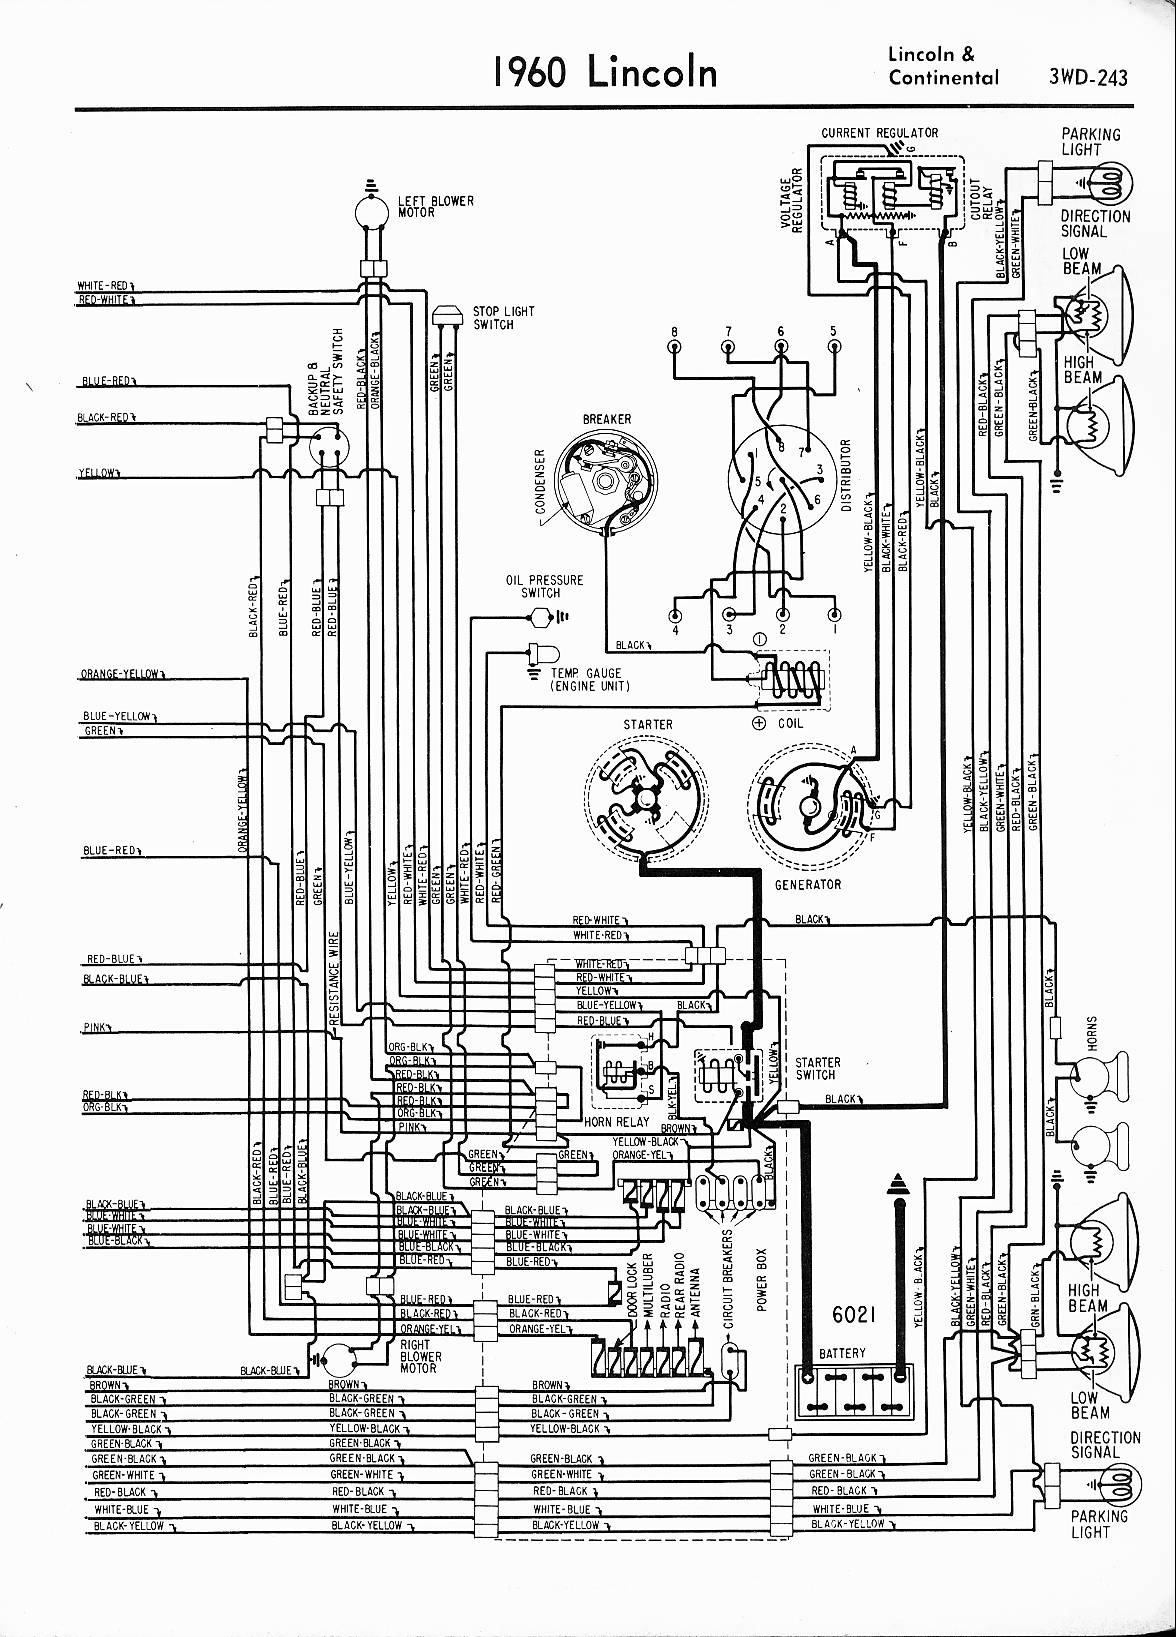 1965 lincoln continental wiring diagrams YMkXTPz 1995 lincoln mark viii radio wiring diagram wirdig readingrat net Chevy Wiring Harness Diagram at aneh.co